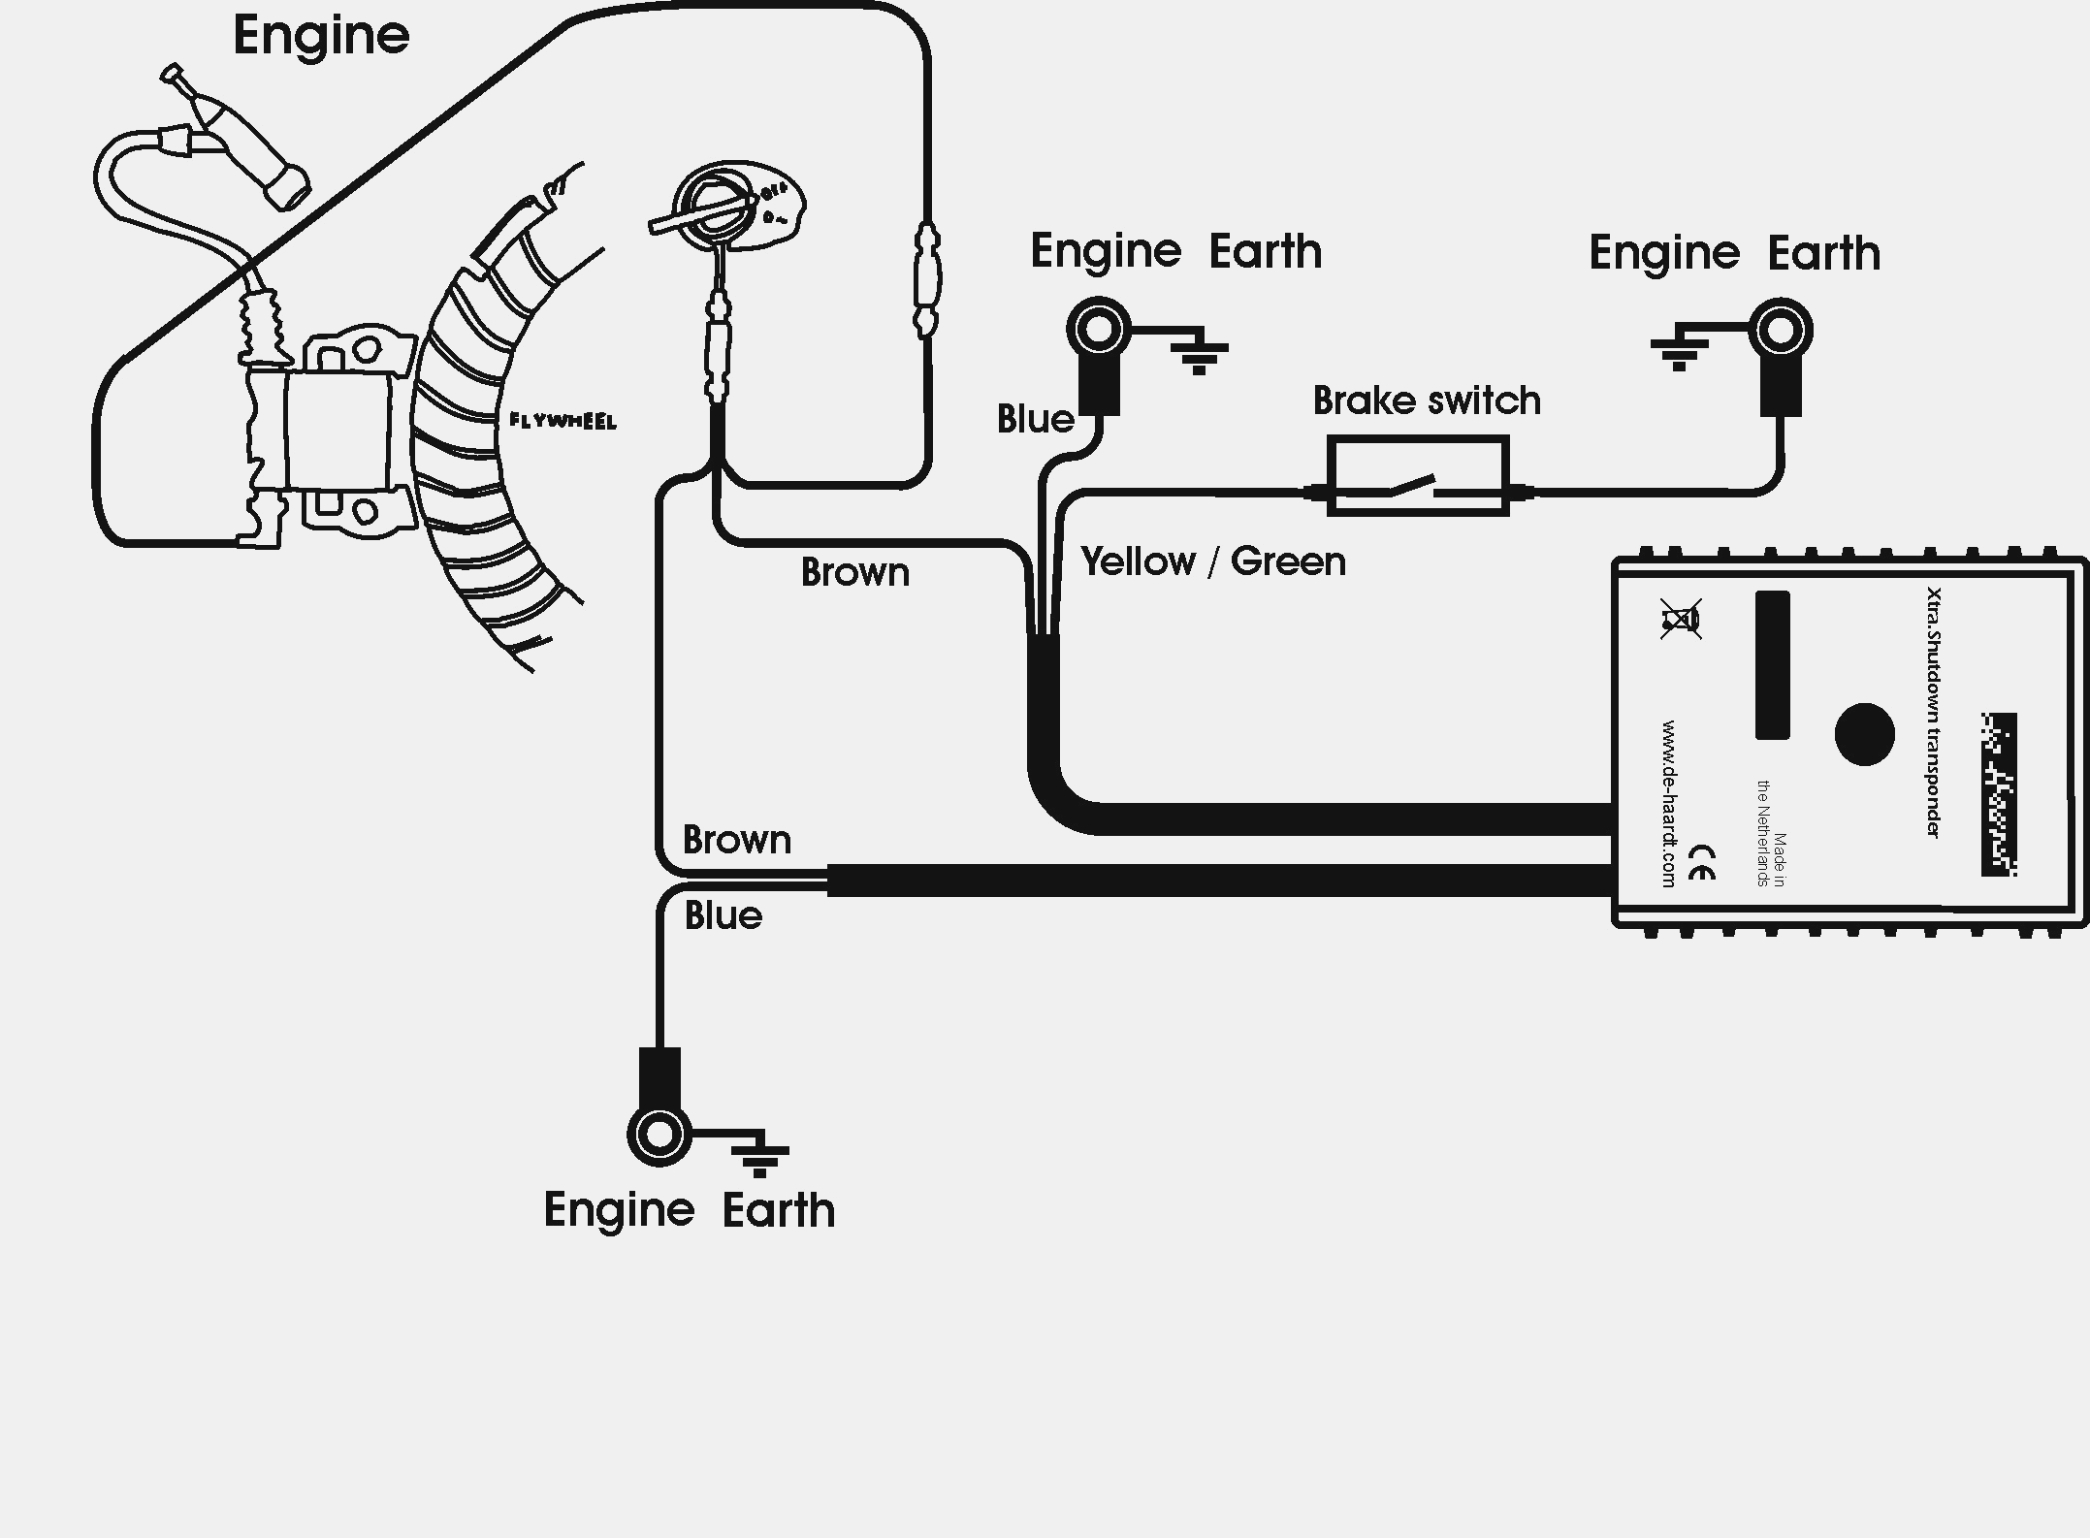 Honda Gx270 Electric Start Wiring Diagram